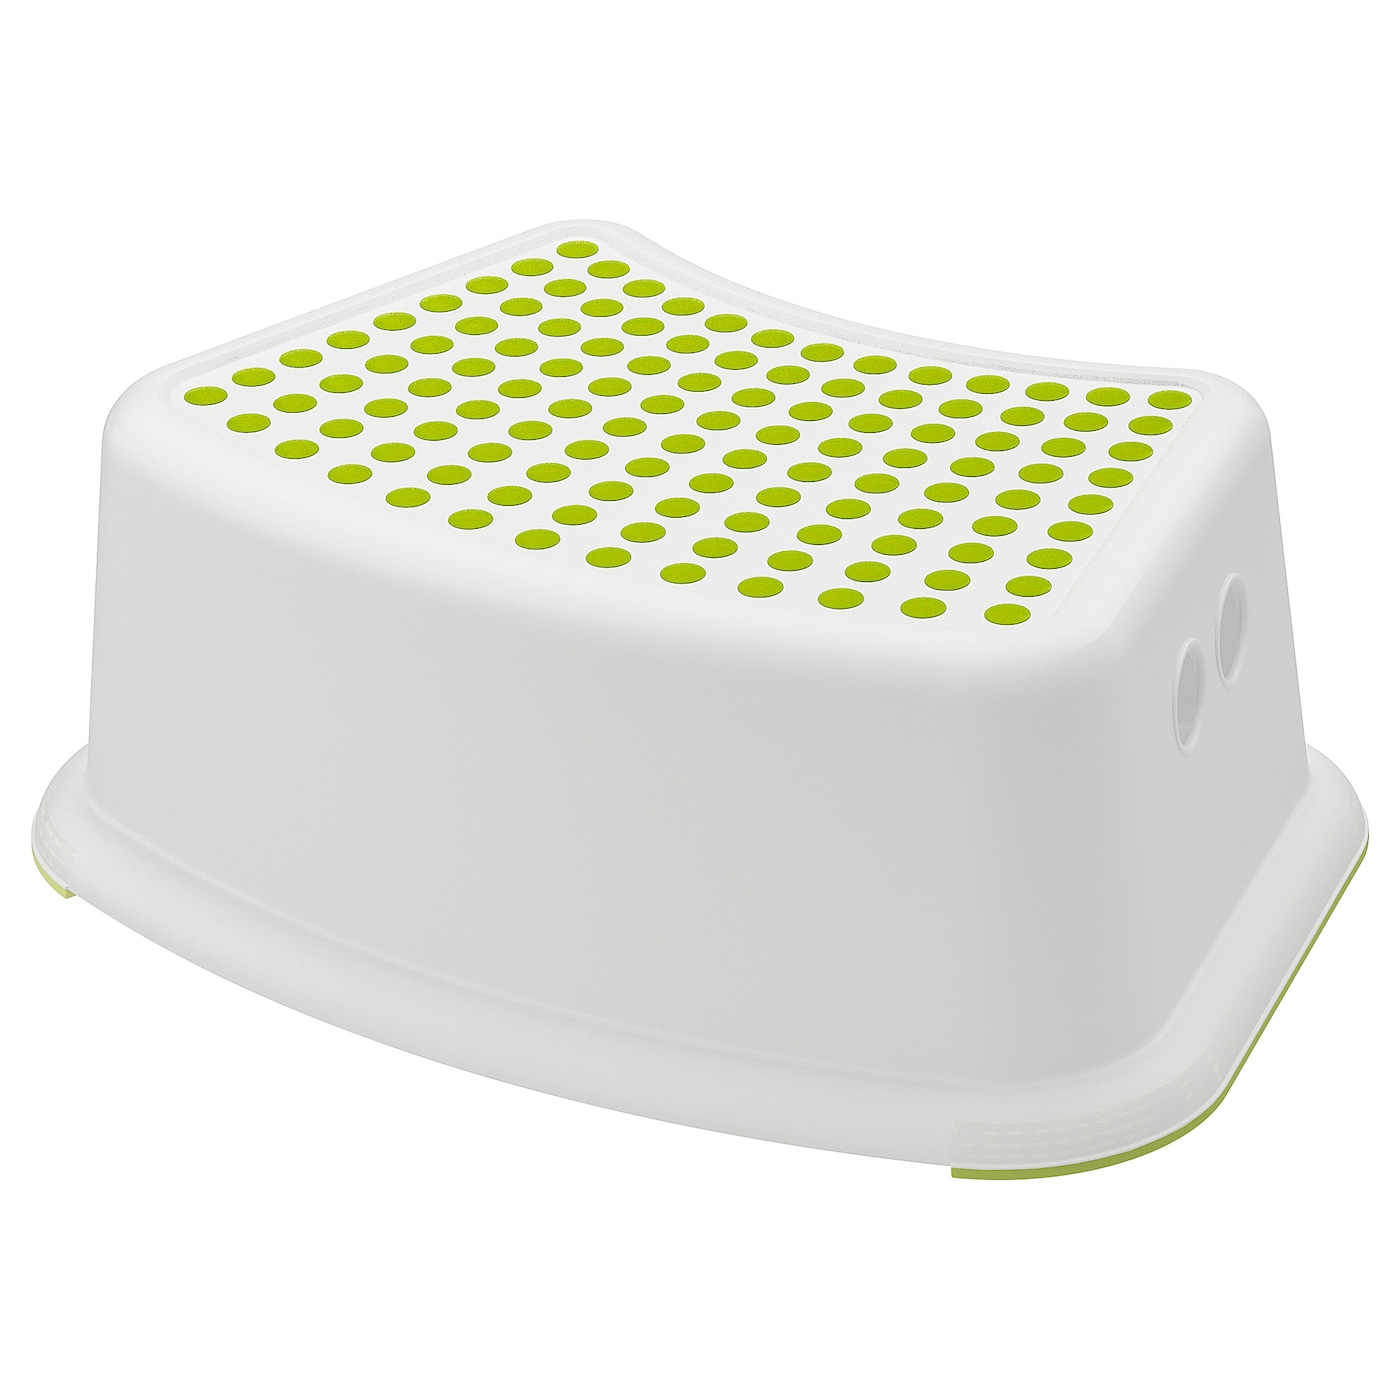 Seat stool stool skecker skimen soft padded with Ikea rosalistoff sourced and great dumpling tip